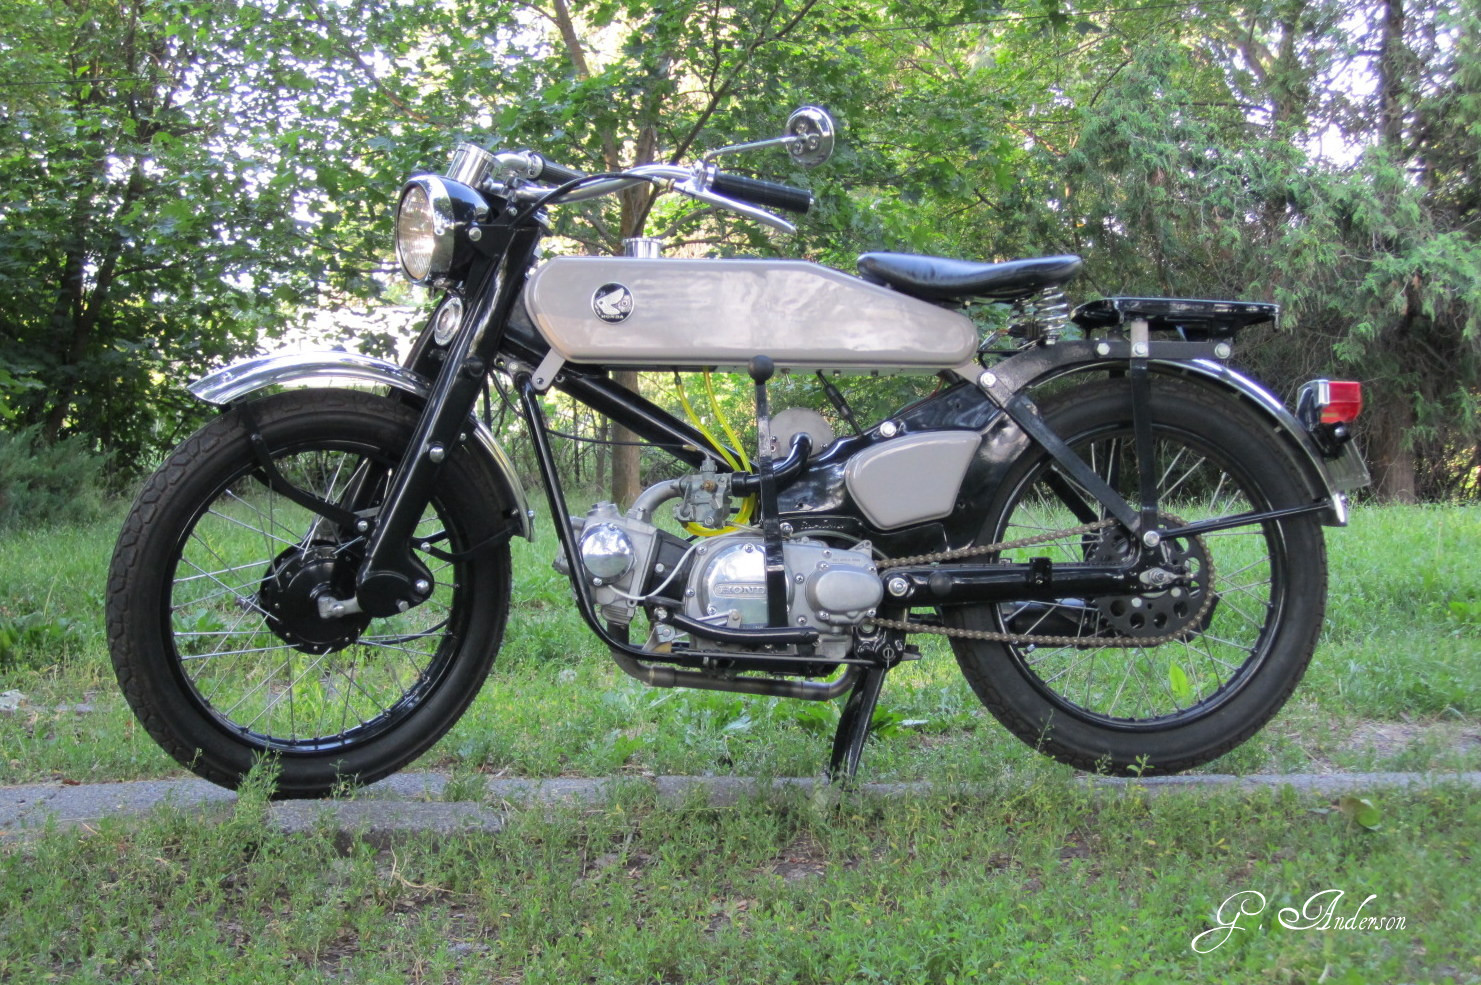 Chalopy 2012 The Above Picture Shows Honda Cb100 Pictorial Diagram It 75 Ct90